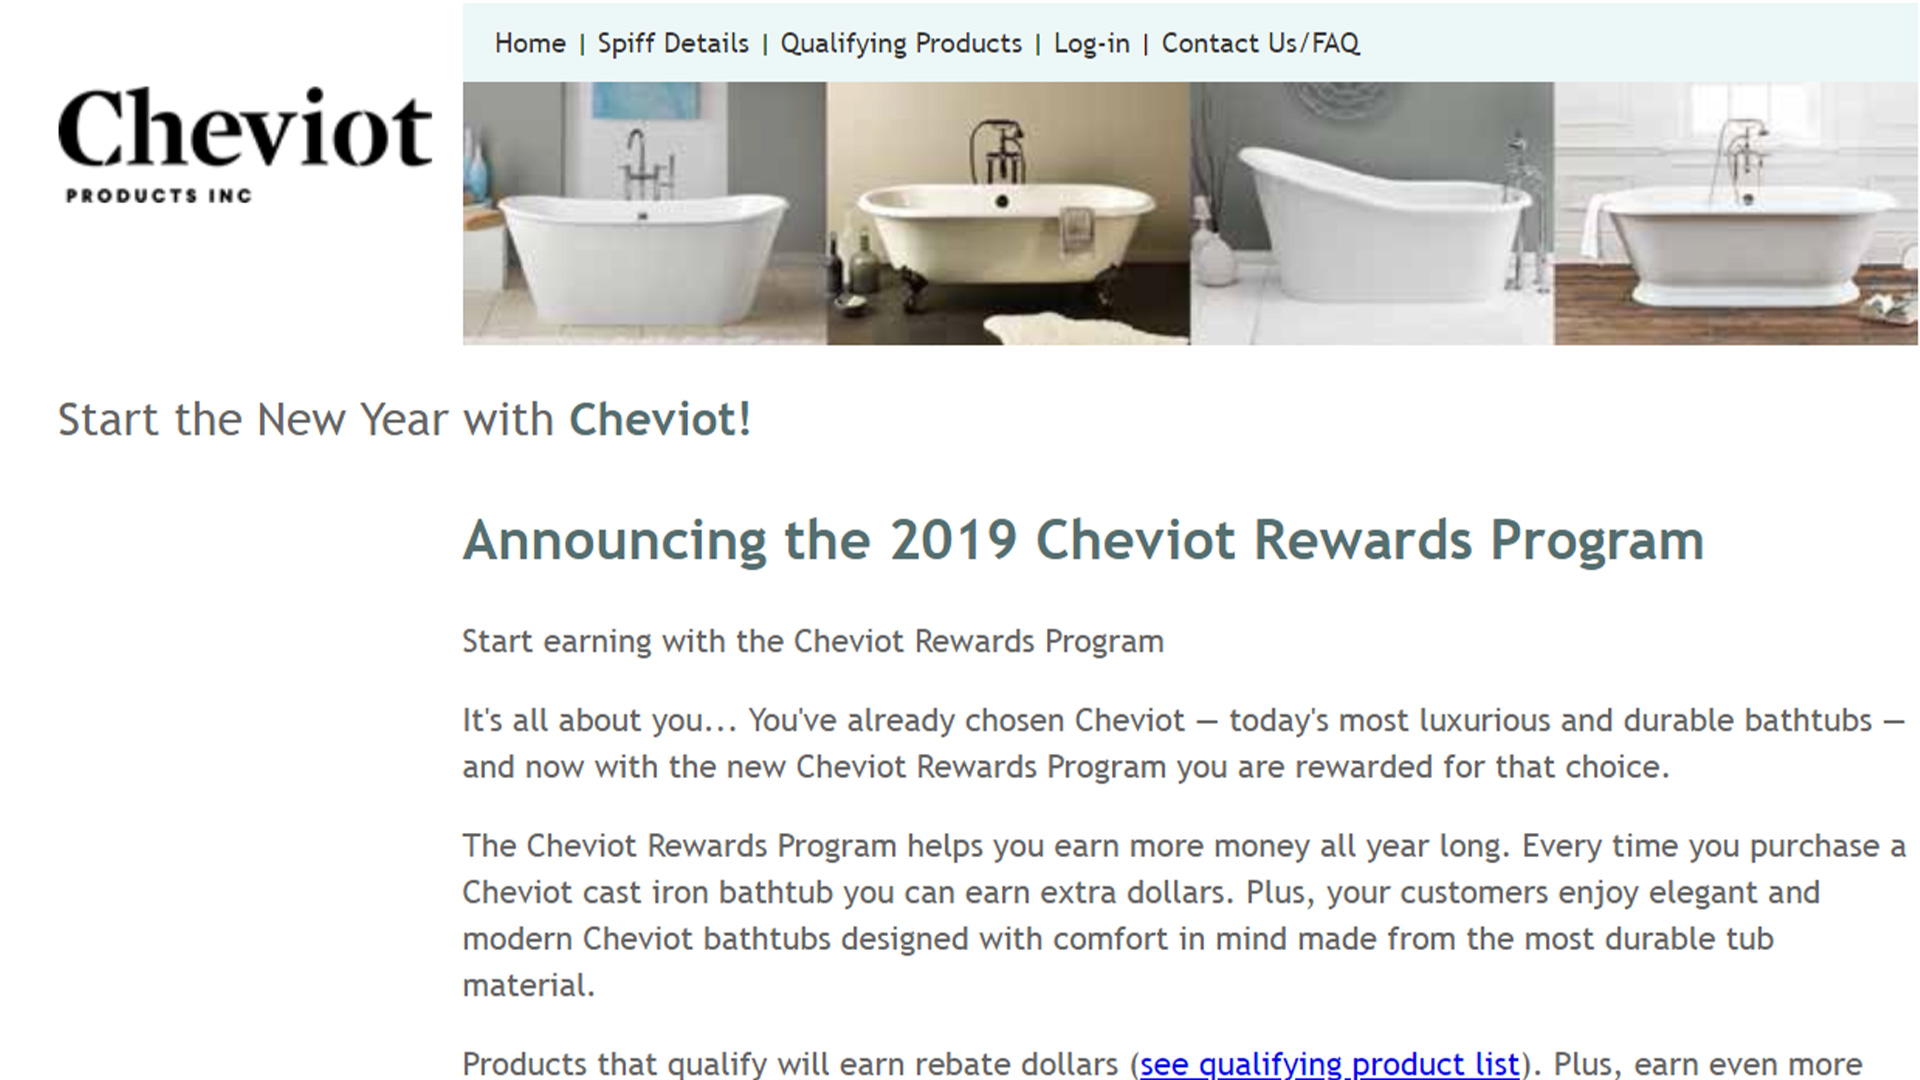 Cheviot Rewards Program